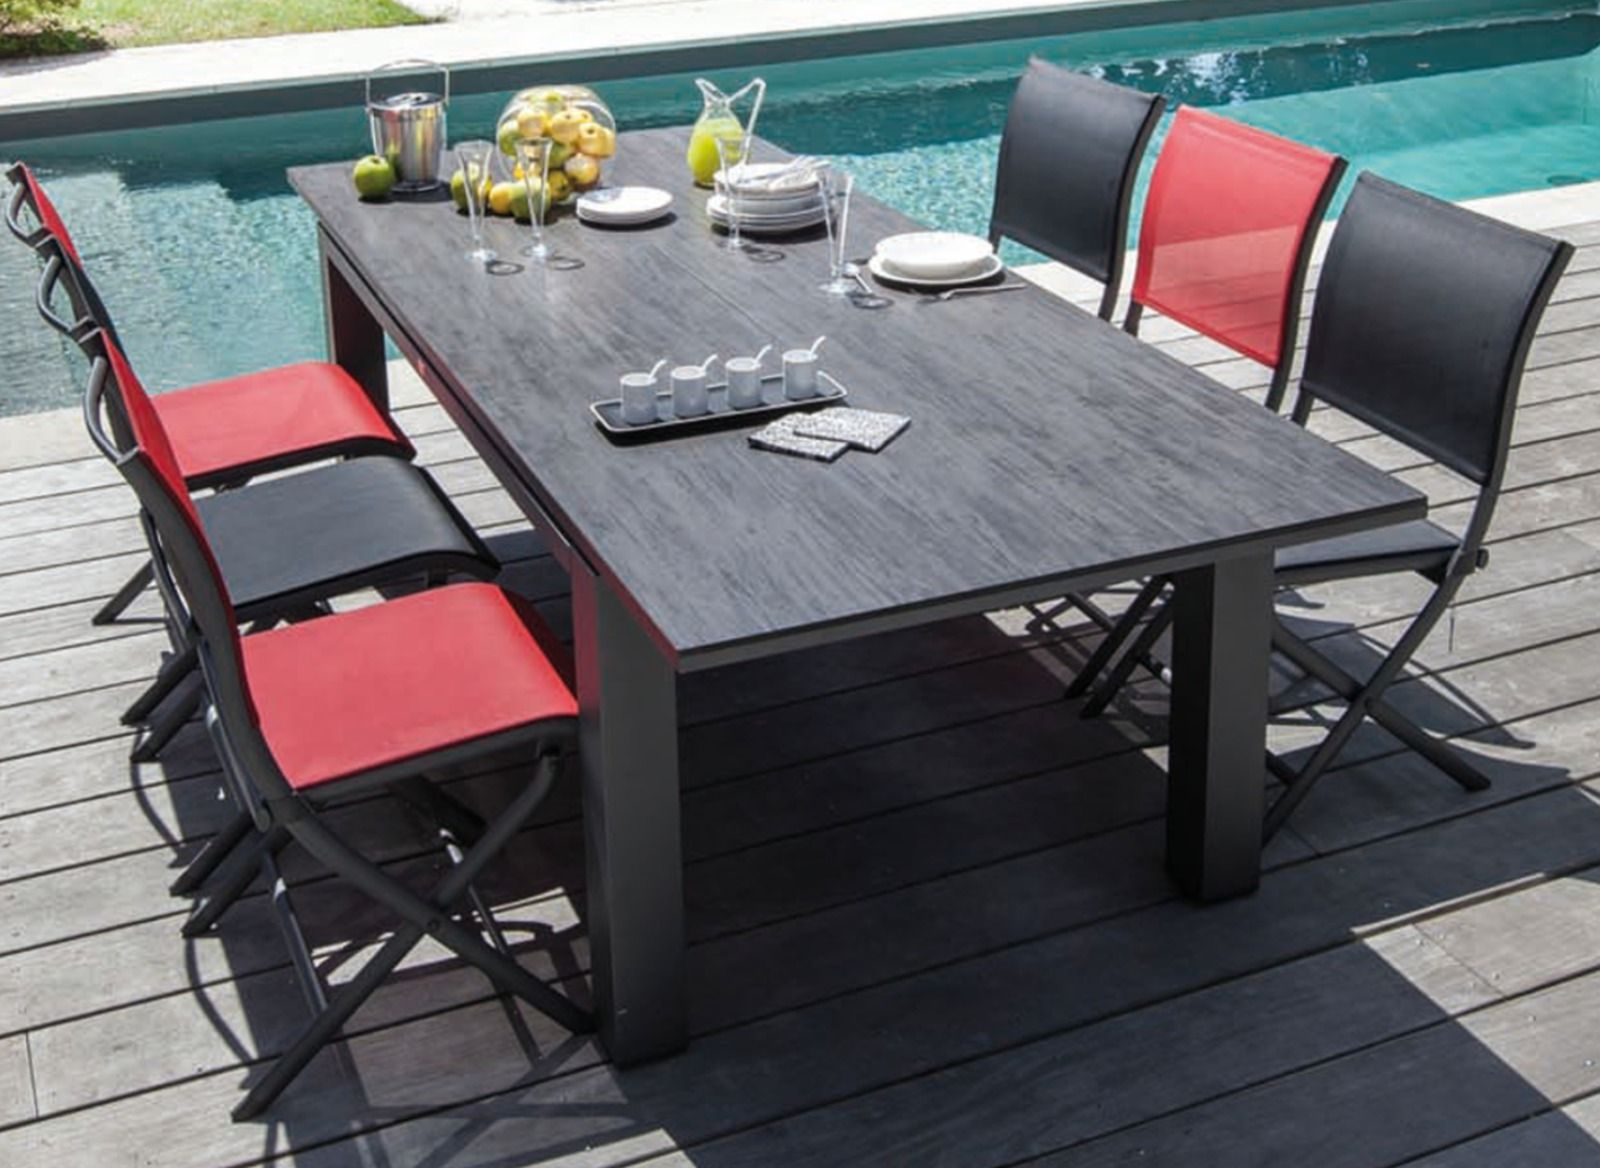 Table de jardin flo 180 240 cm plateau hpl oc o for Table exterieur hpl